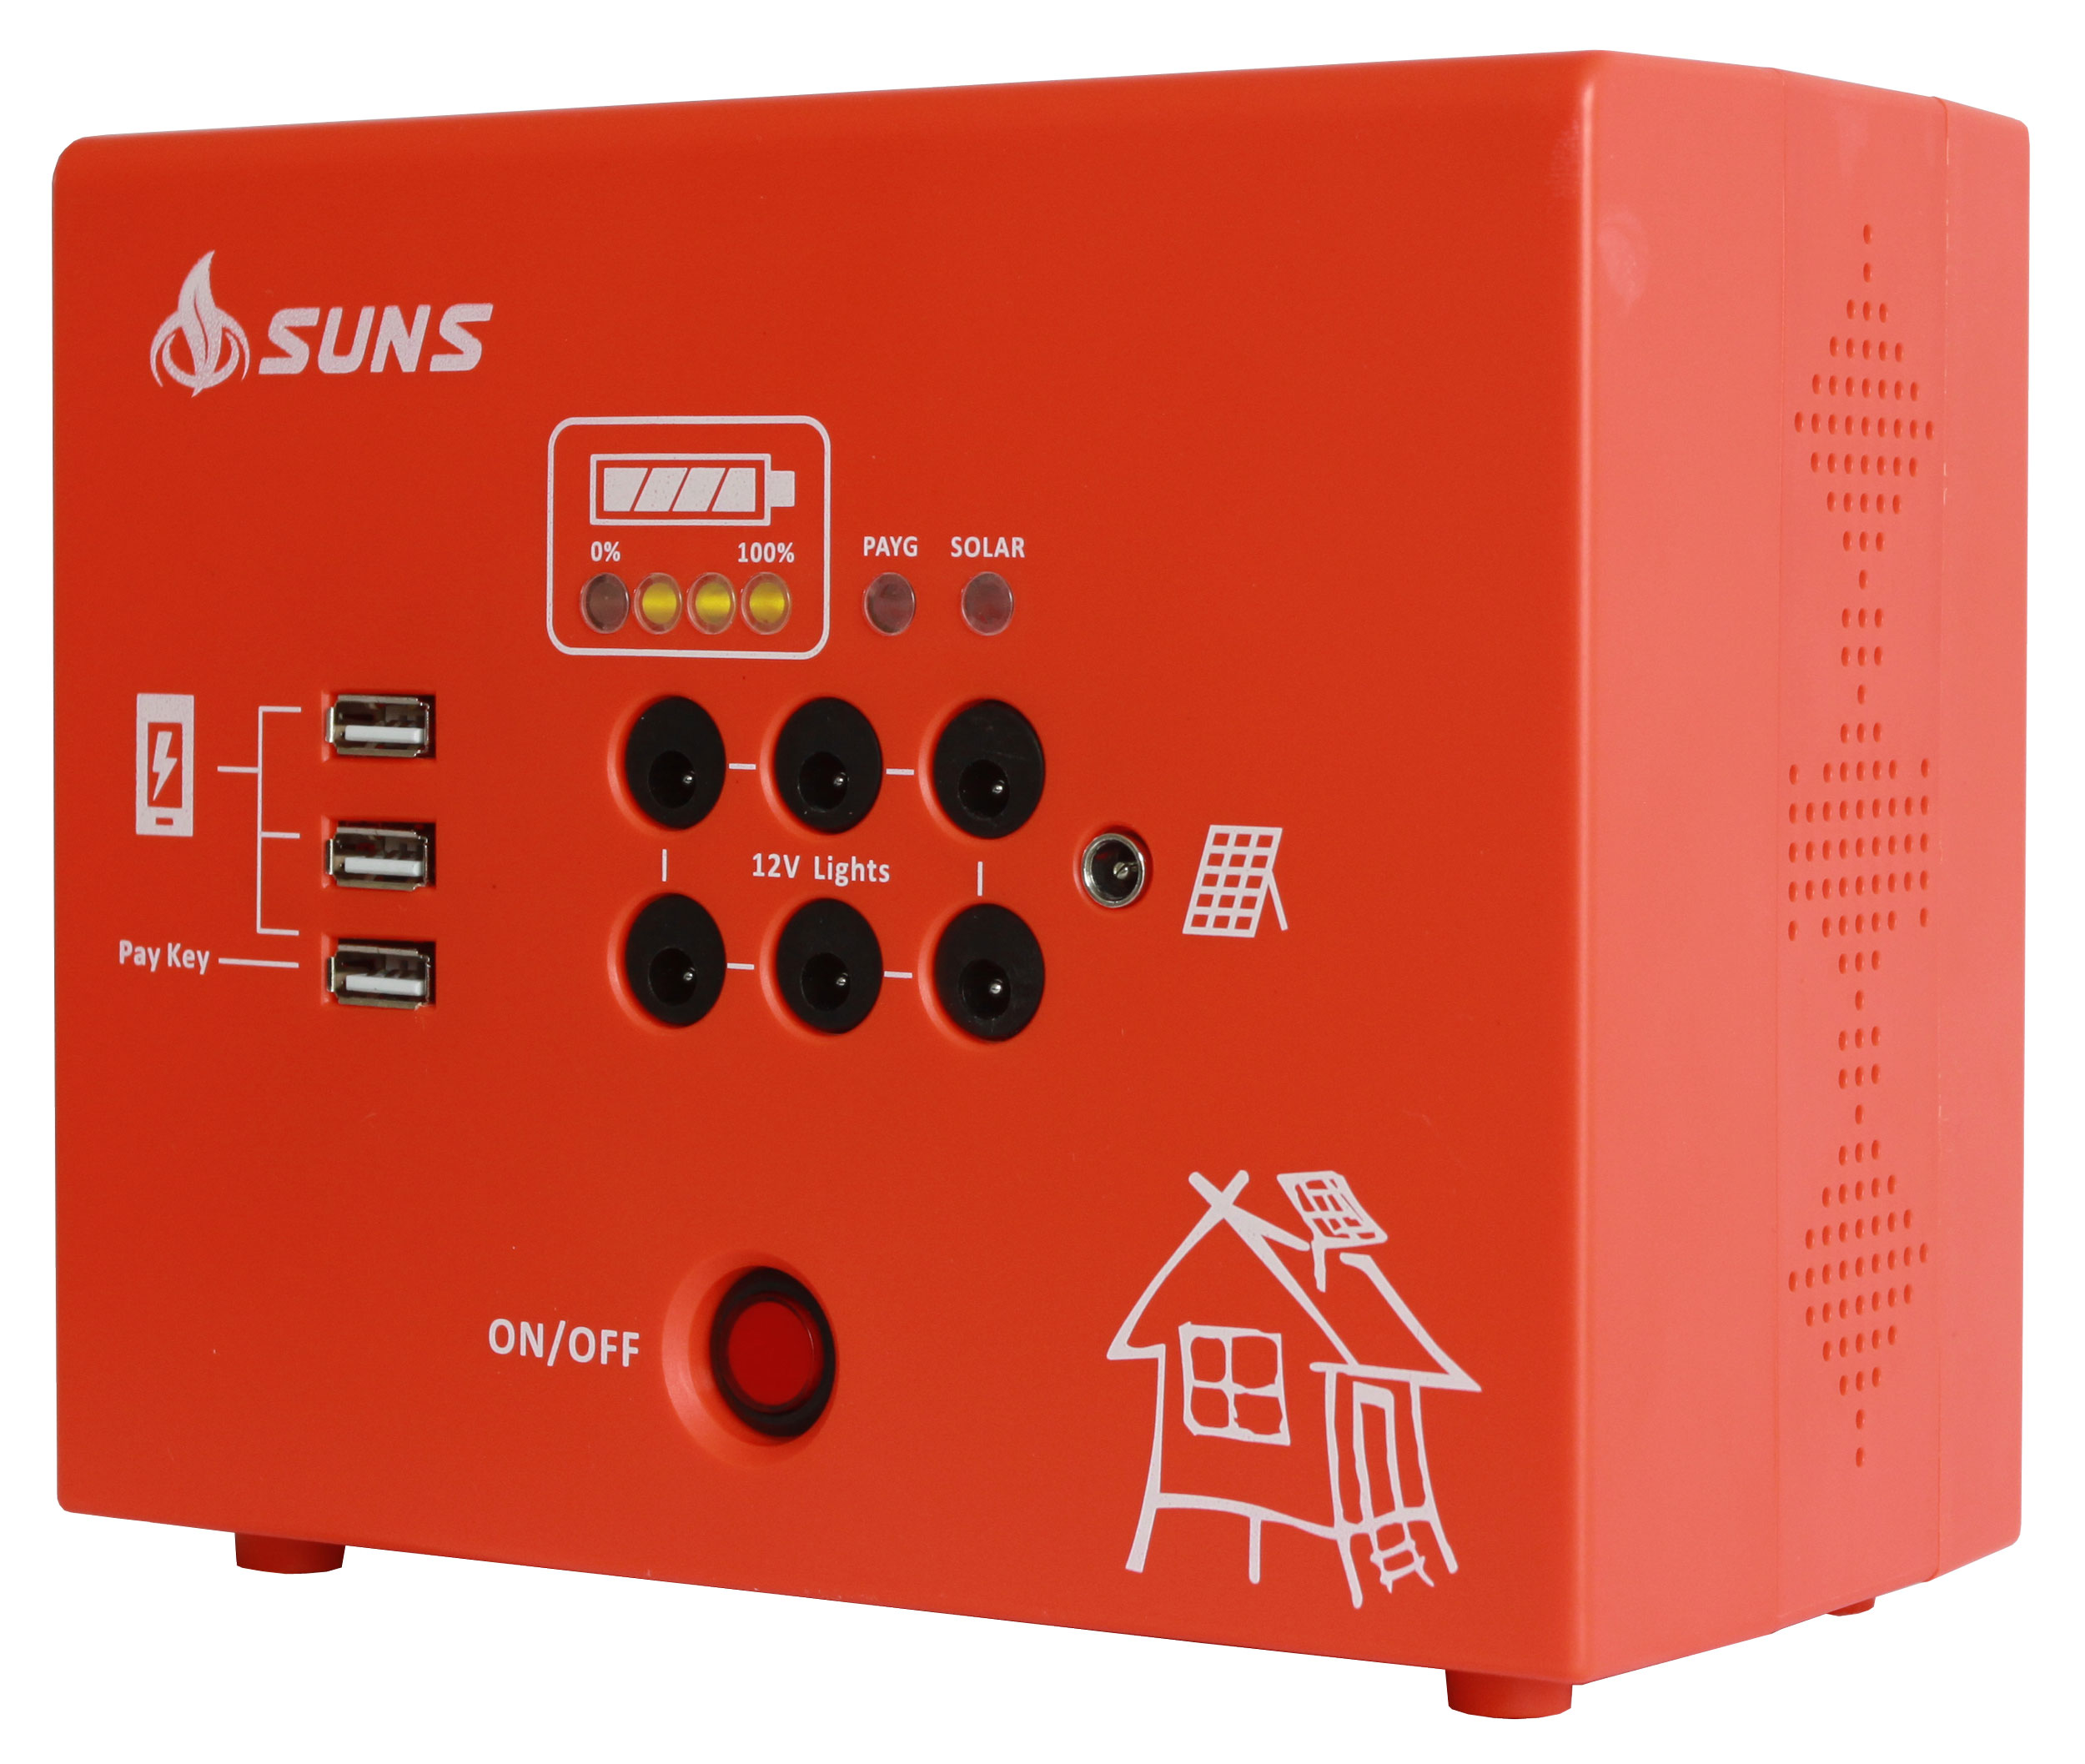 Pay as you go prepaid solar home power batteries systems 60W off grid complete